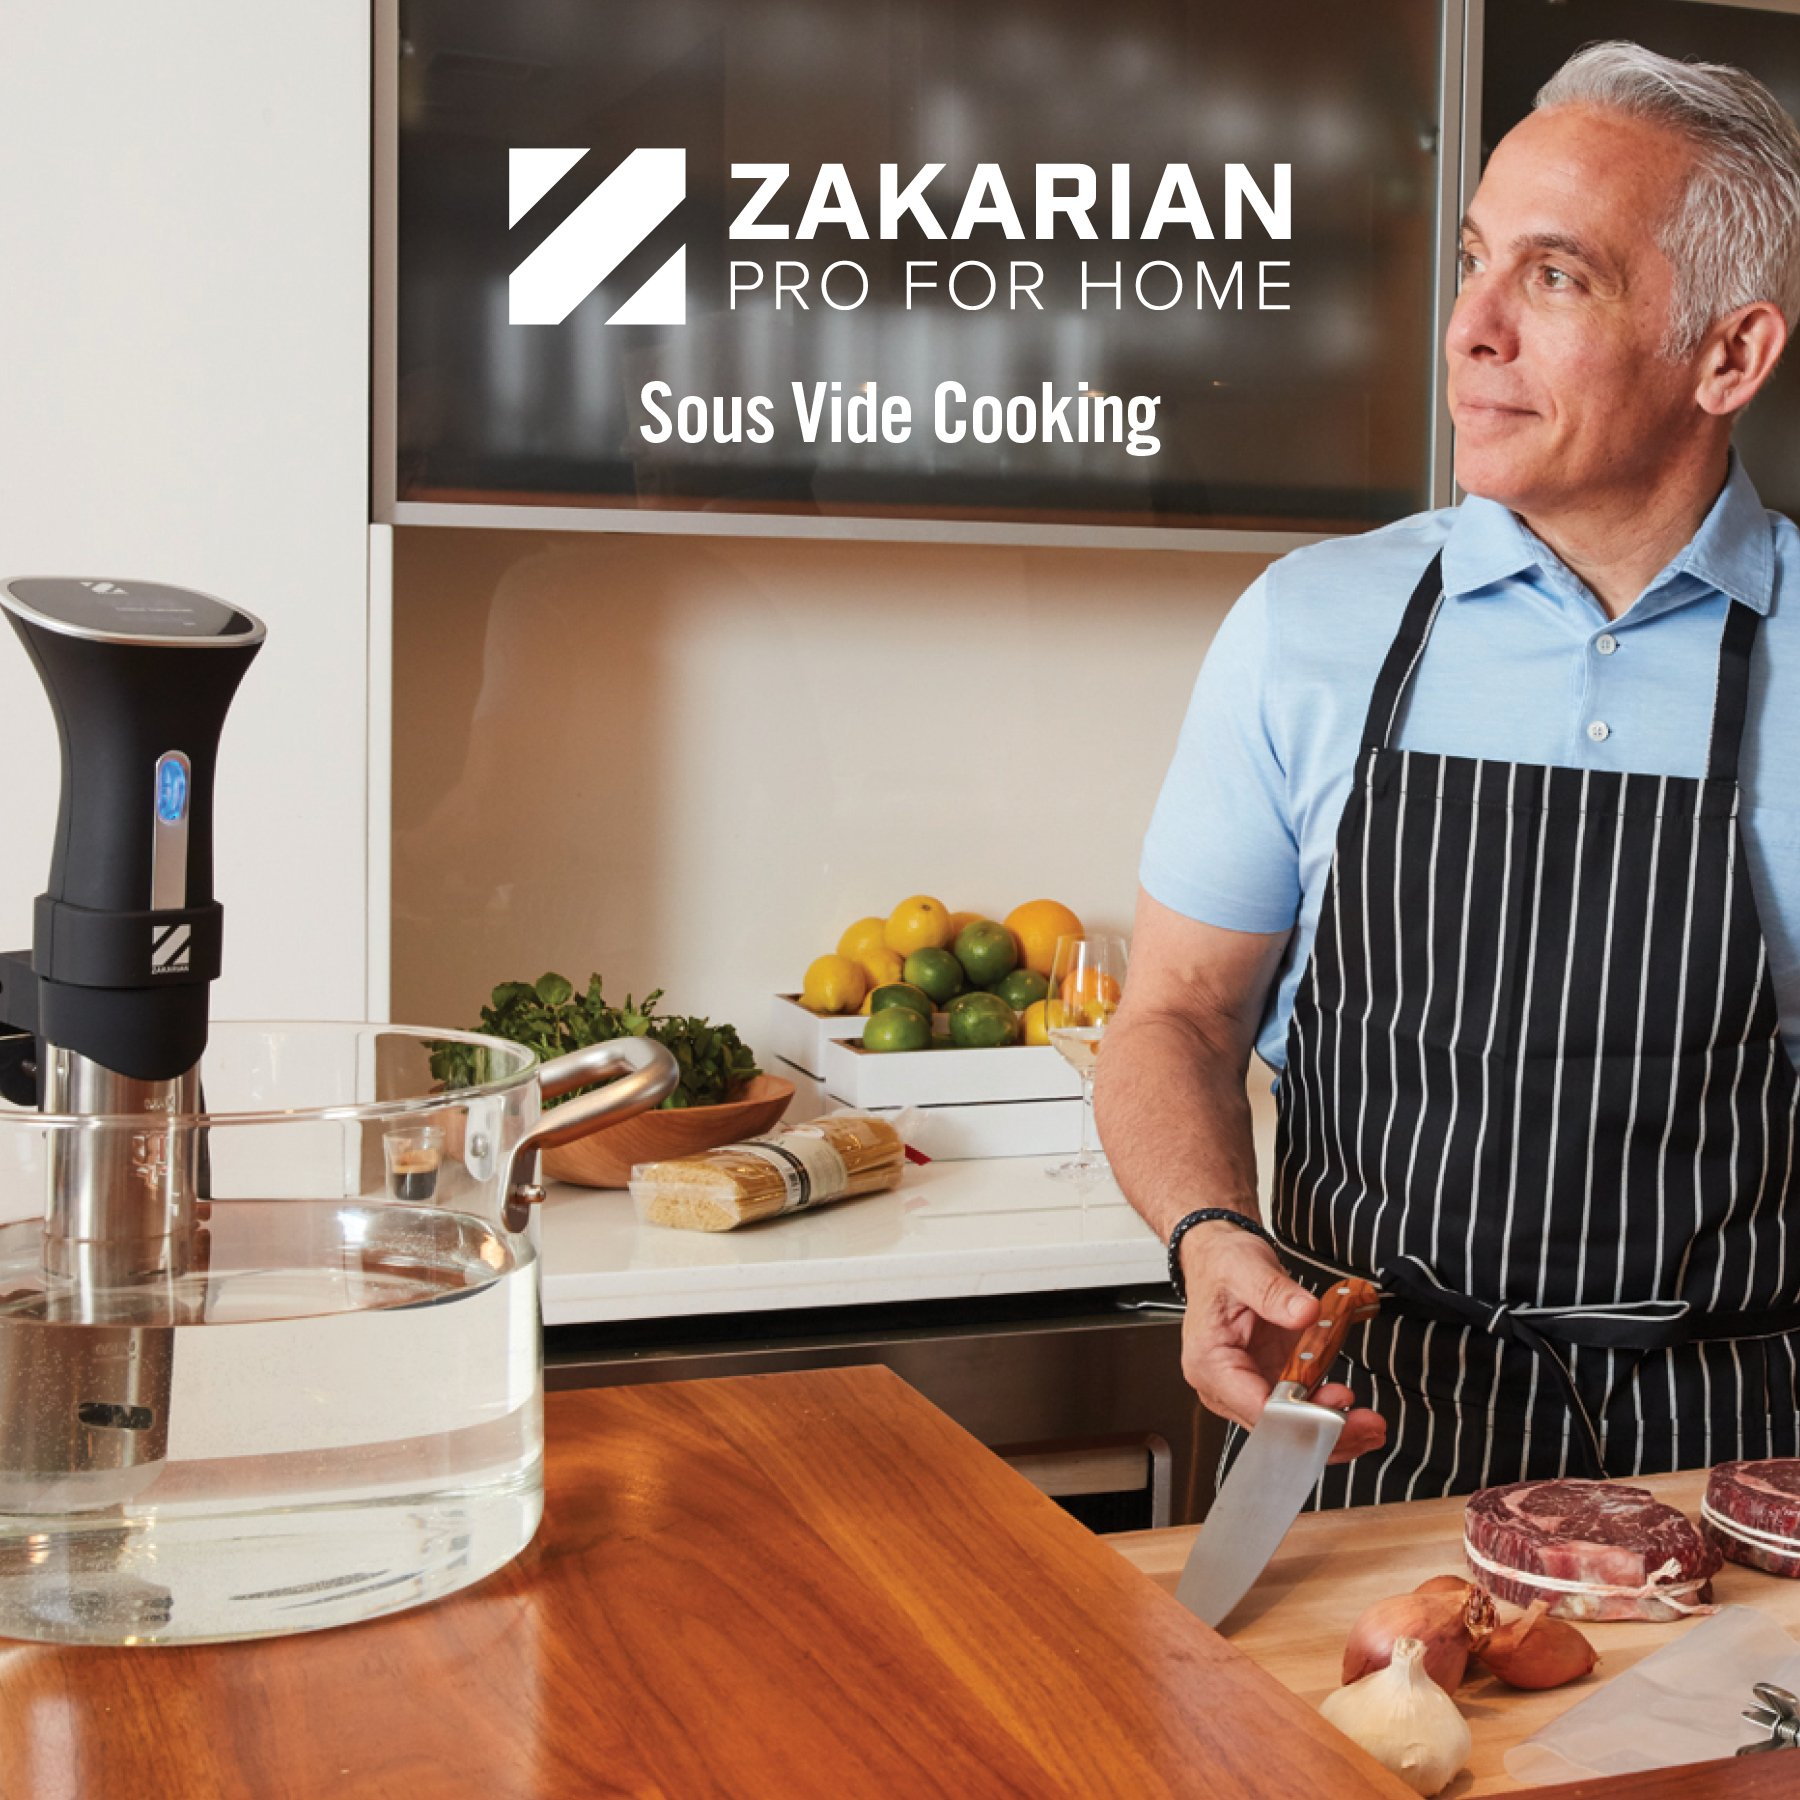 Zakarian Pro for Home Sous Vide, Immersion Circulator, Precise Cooker by Chef Geoffrey Zakarian by Zakarian (Image #2)